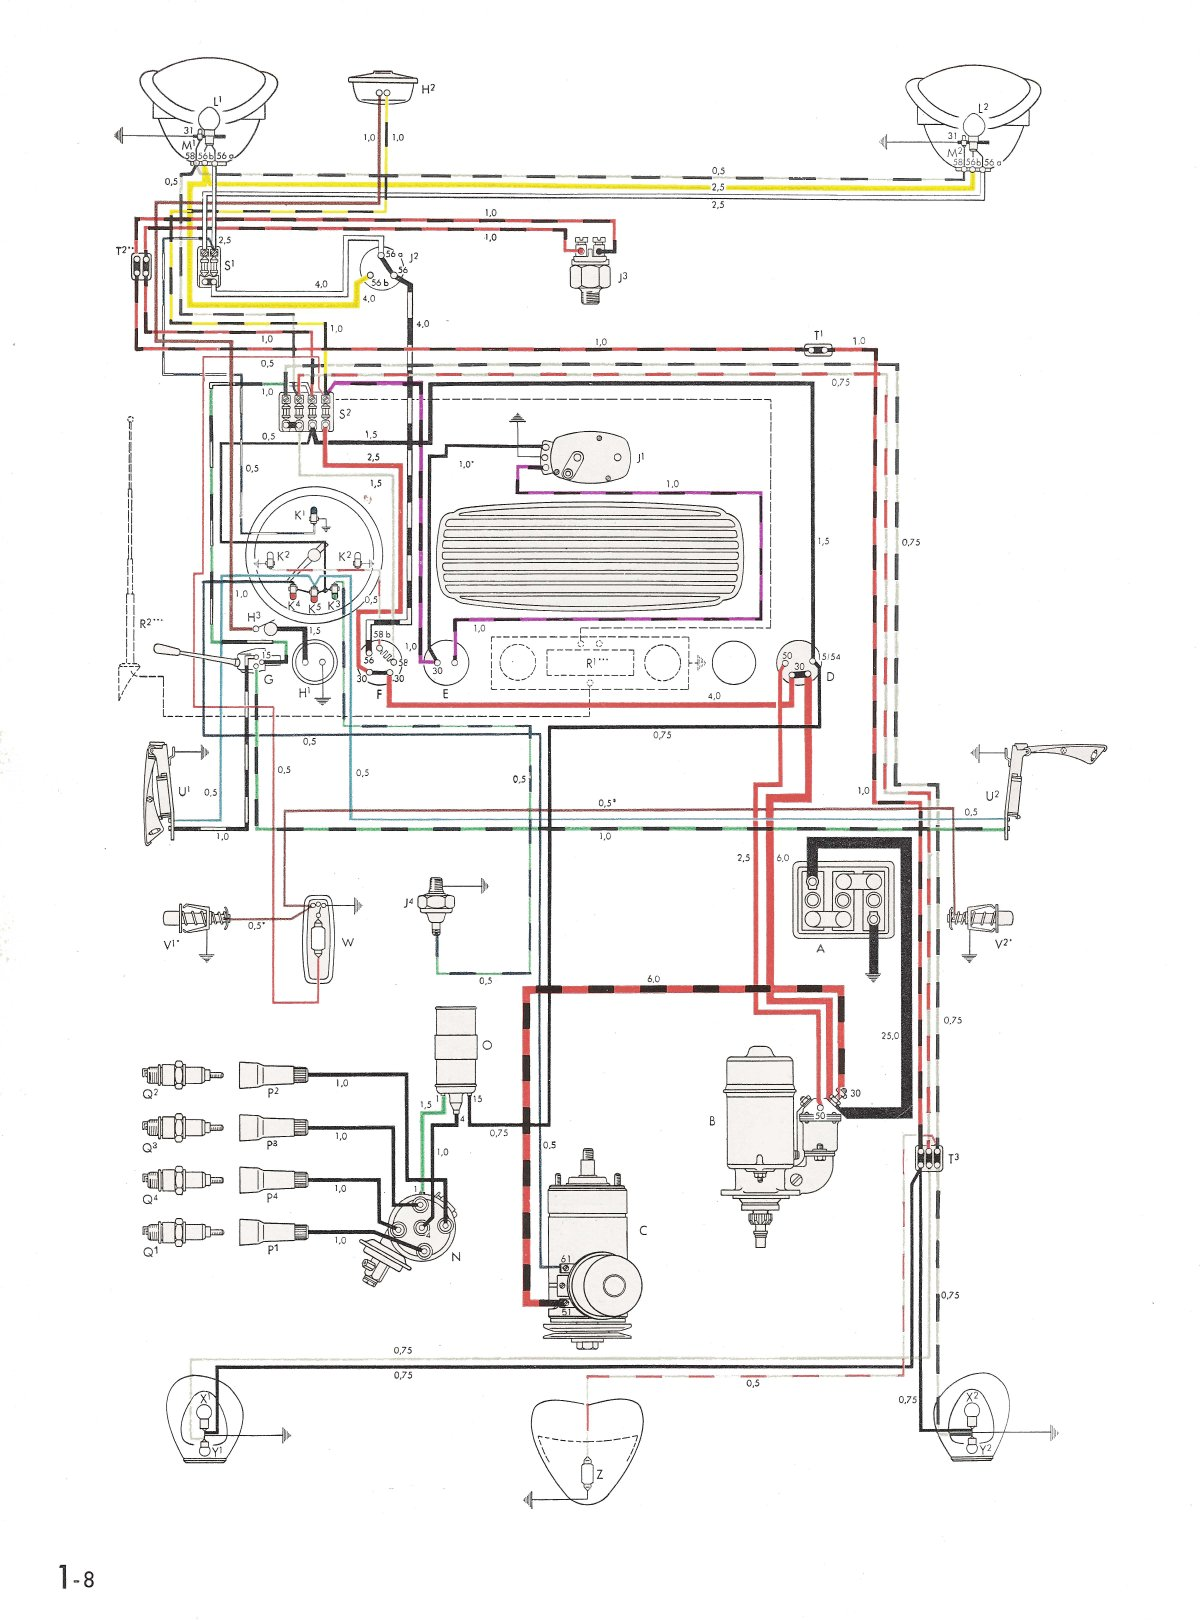 bug54 thesamba com type 1 wiring diagrams Turn Signal Flasher Wiring-Diagram at gsmx.co